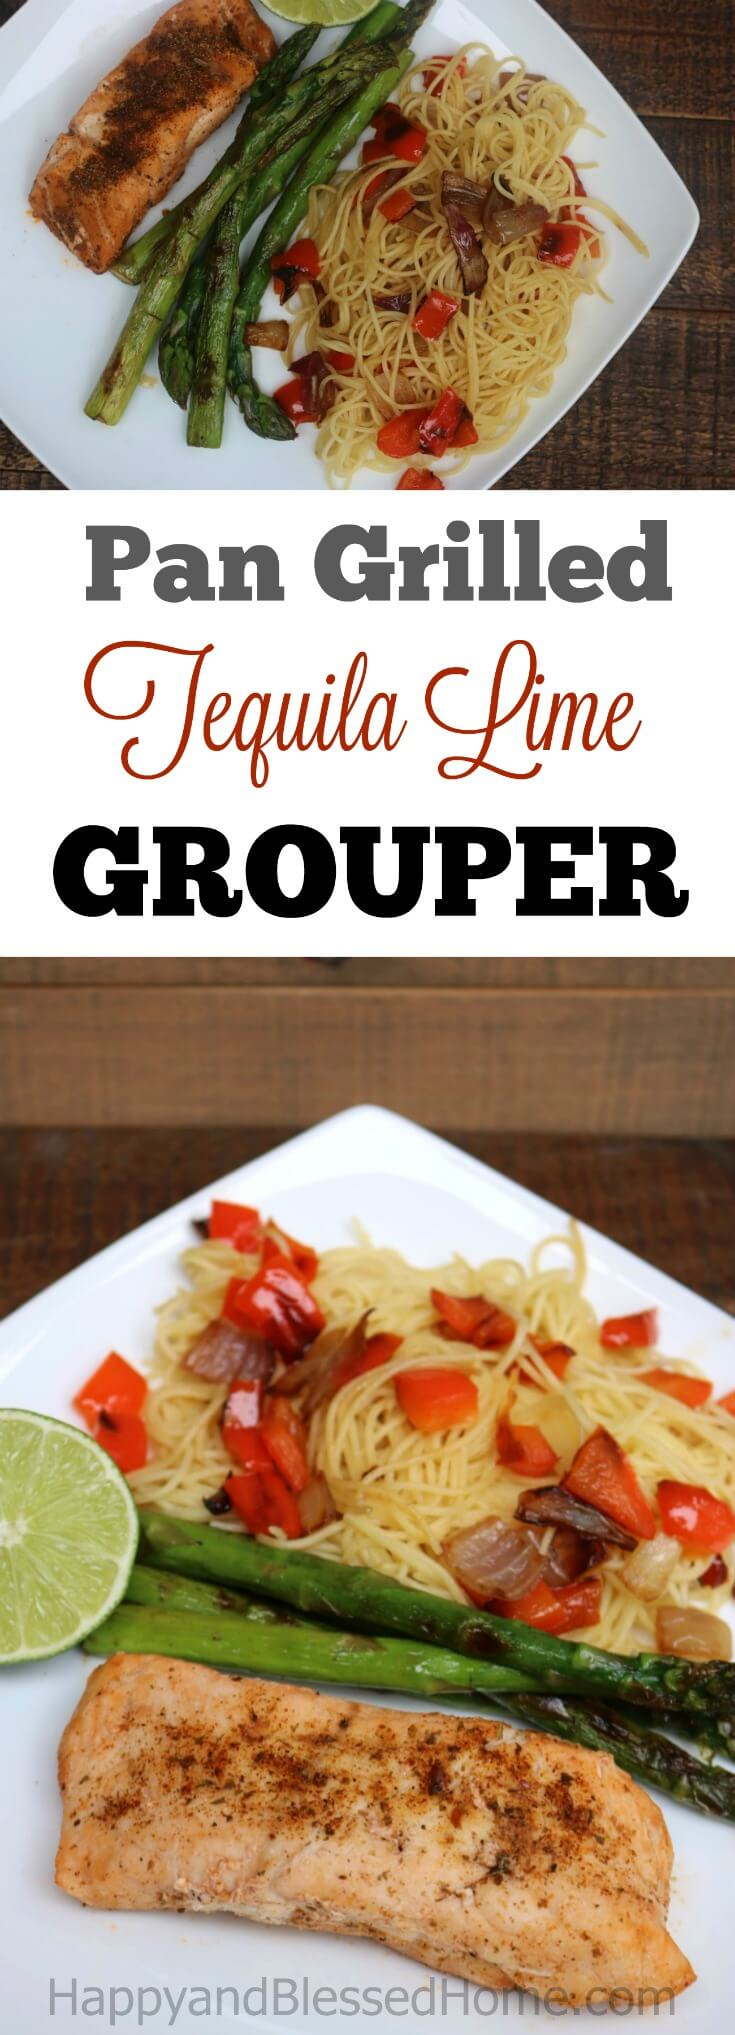 Pan Grilled Tequila Lime Grouper Recipe with Grilled Veggies and Pasta